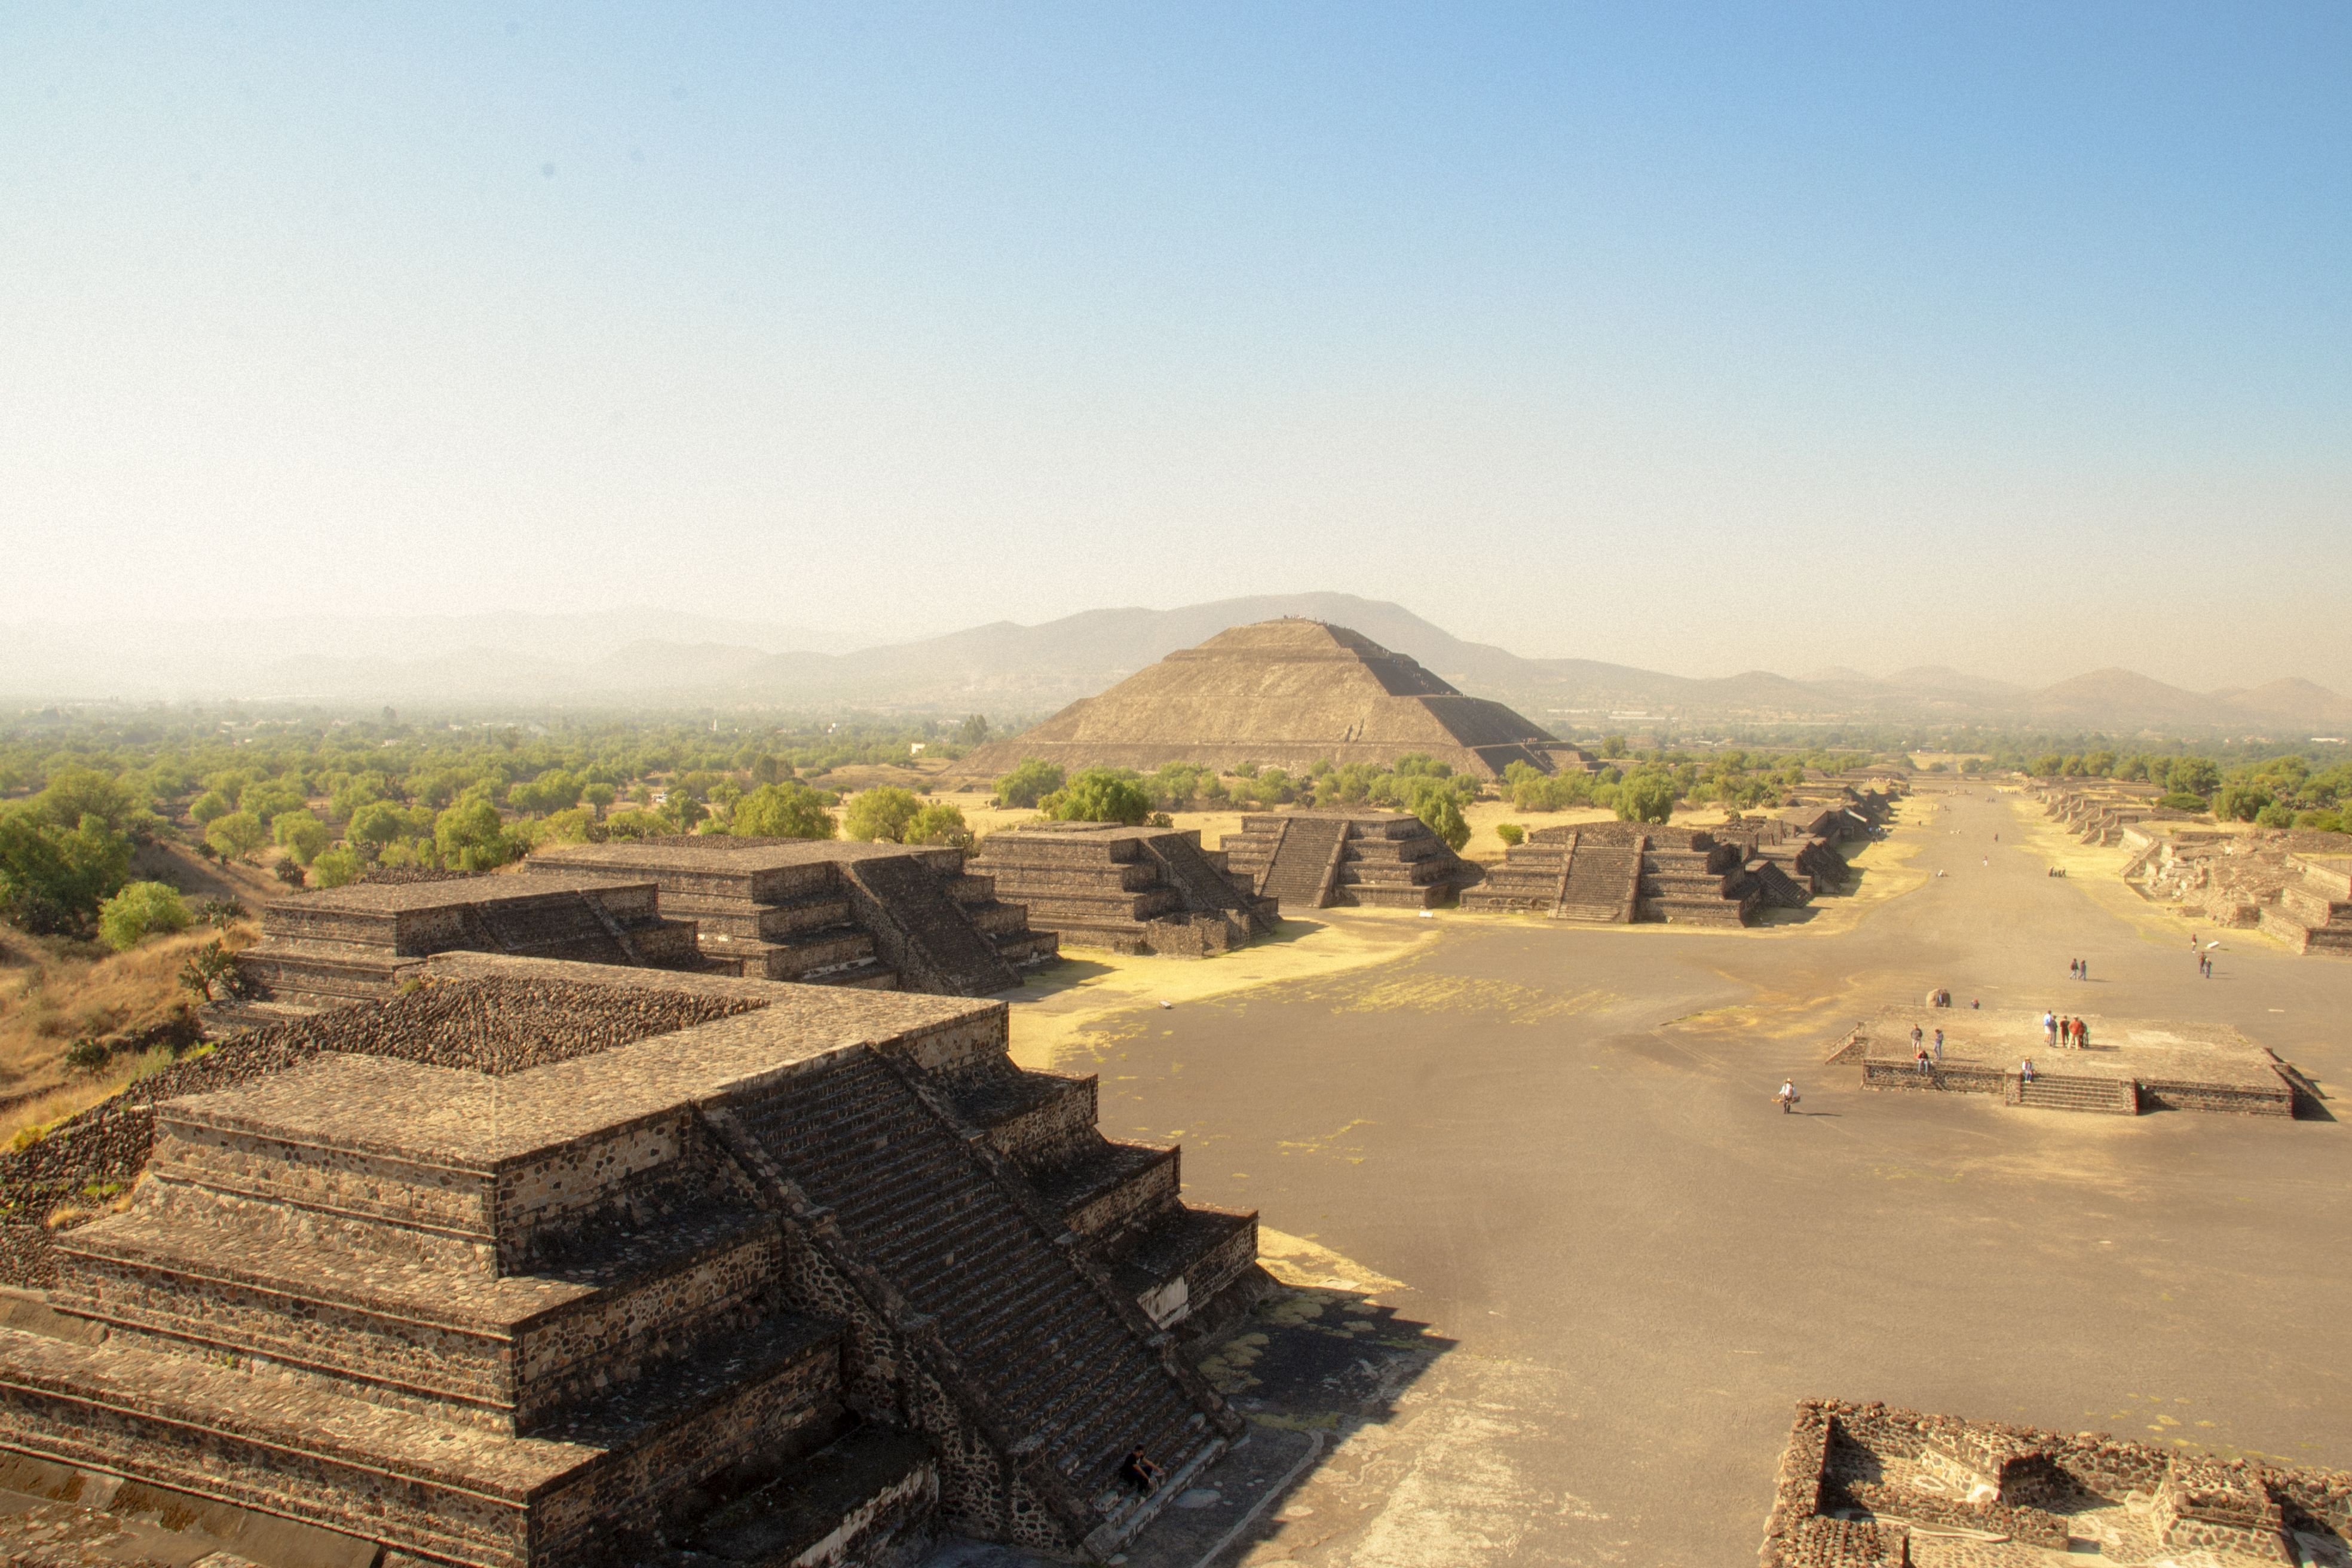 Elevated view of the ruins at Teotihuacan